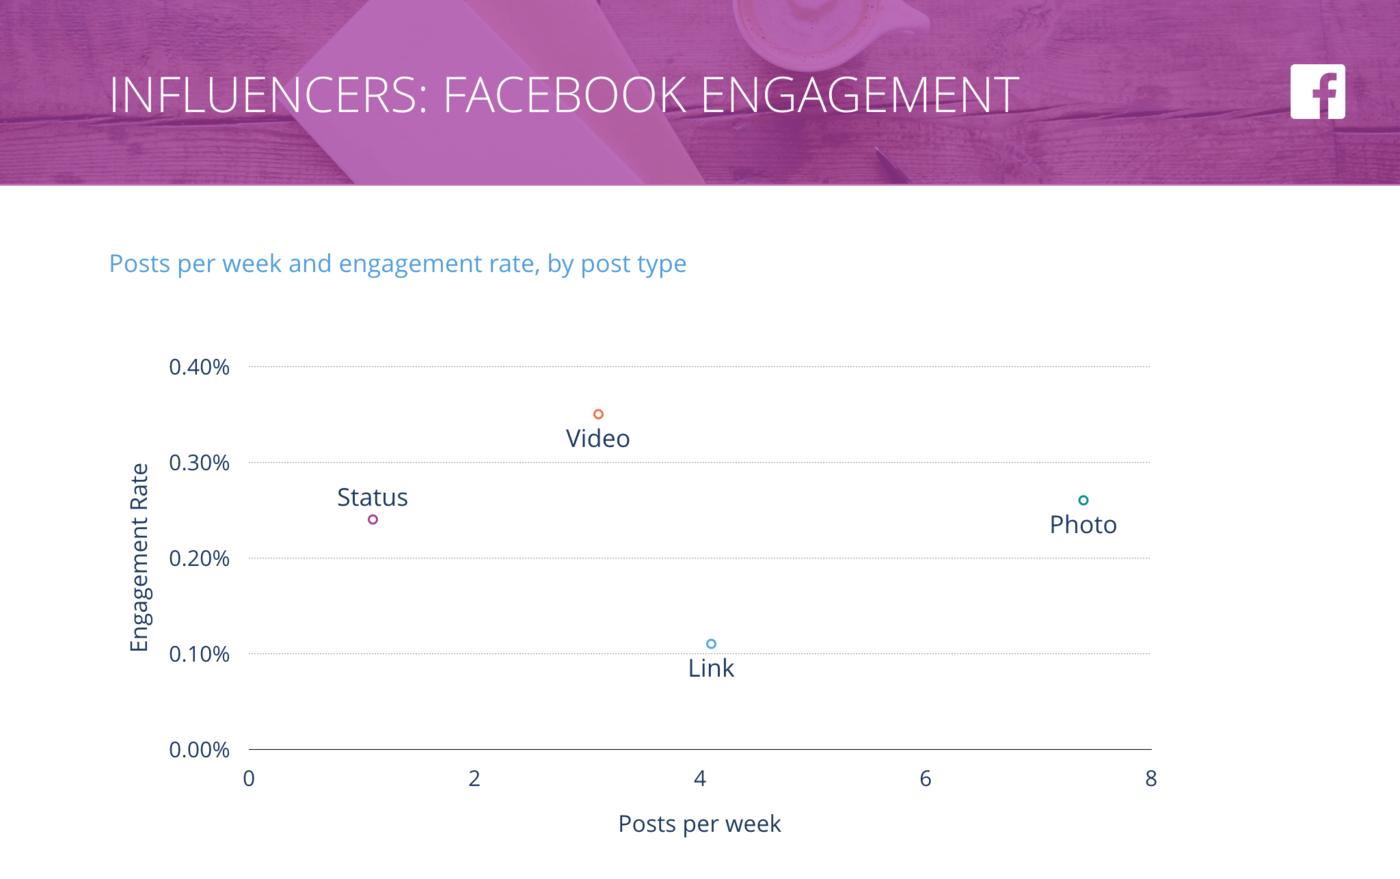 slide for Facebook Posts per Week vs. Engagement Rate per Post, Influencers